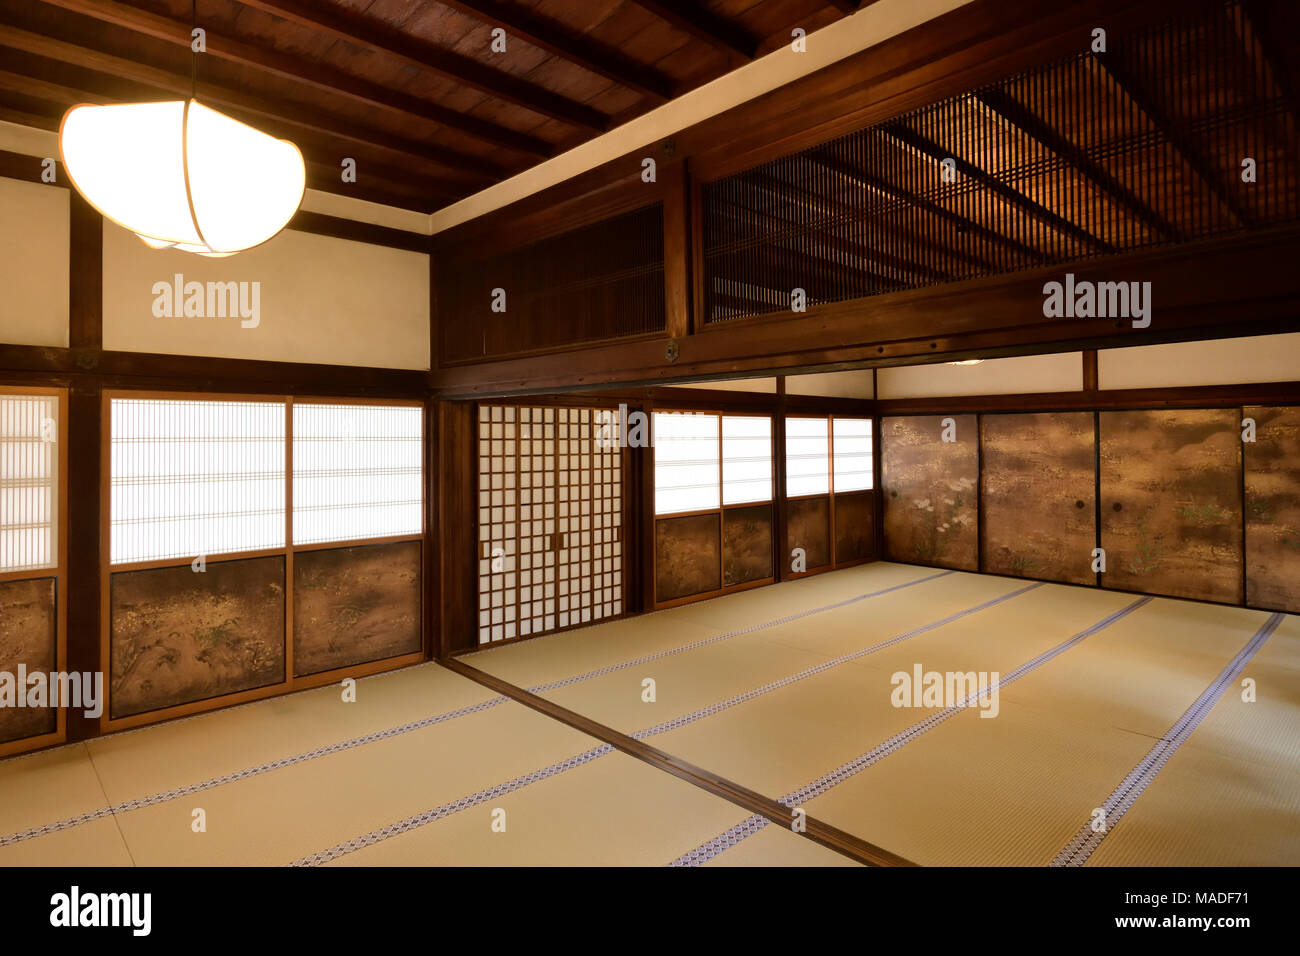 traditionelle japanische temple hall interieur mit tatami matten und lackiert shoji schiebet ren. Black Bedroom Furniture Sets. Home Design Ideas